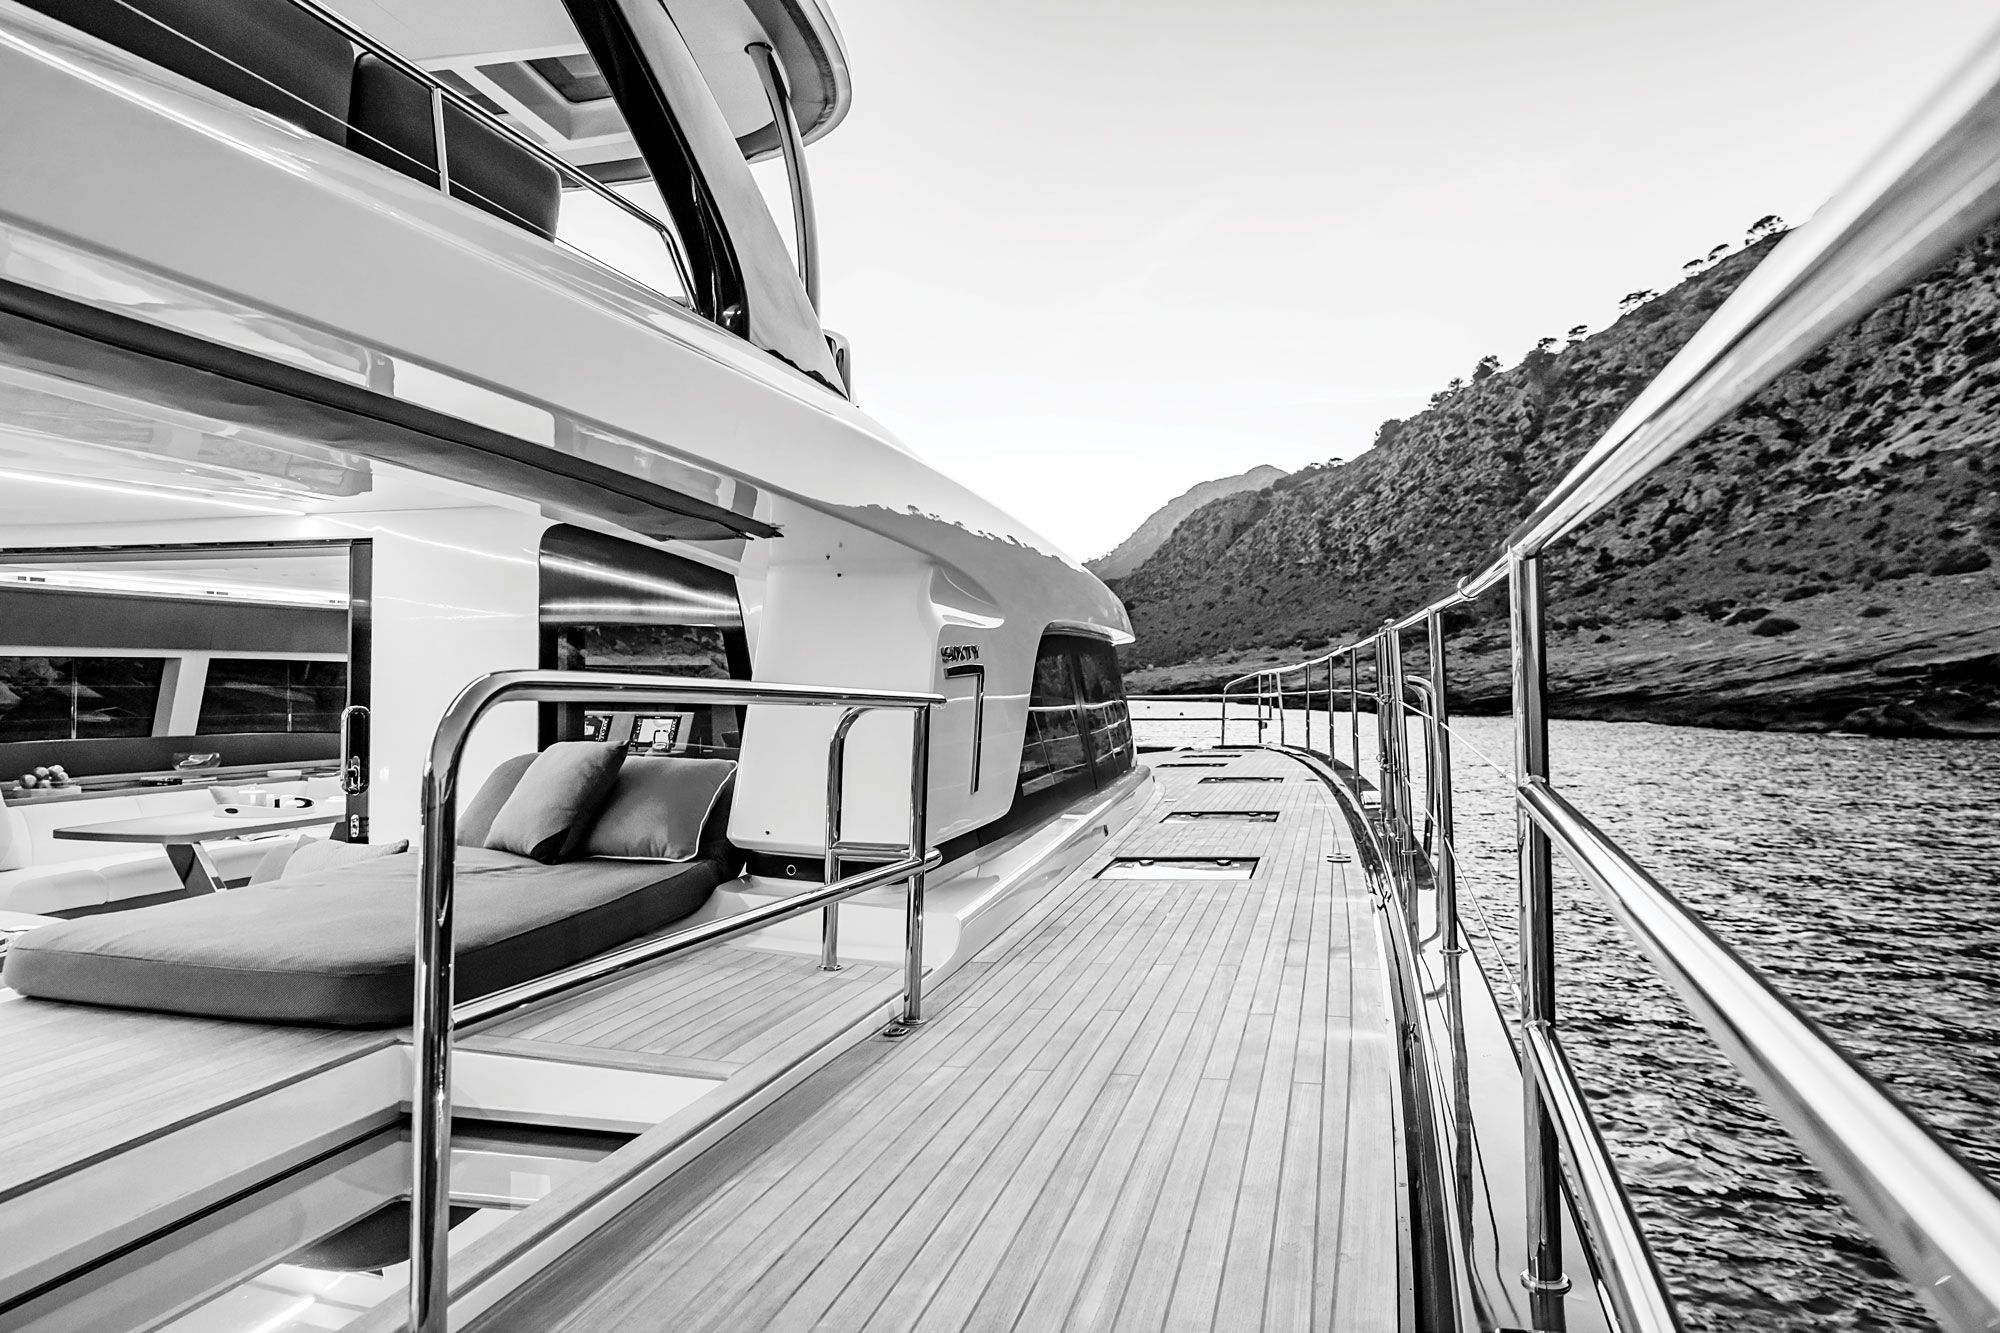 The builder says its new catamarans have about 30 percent more floor space than earlier models.